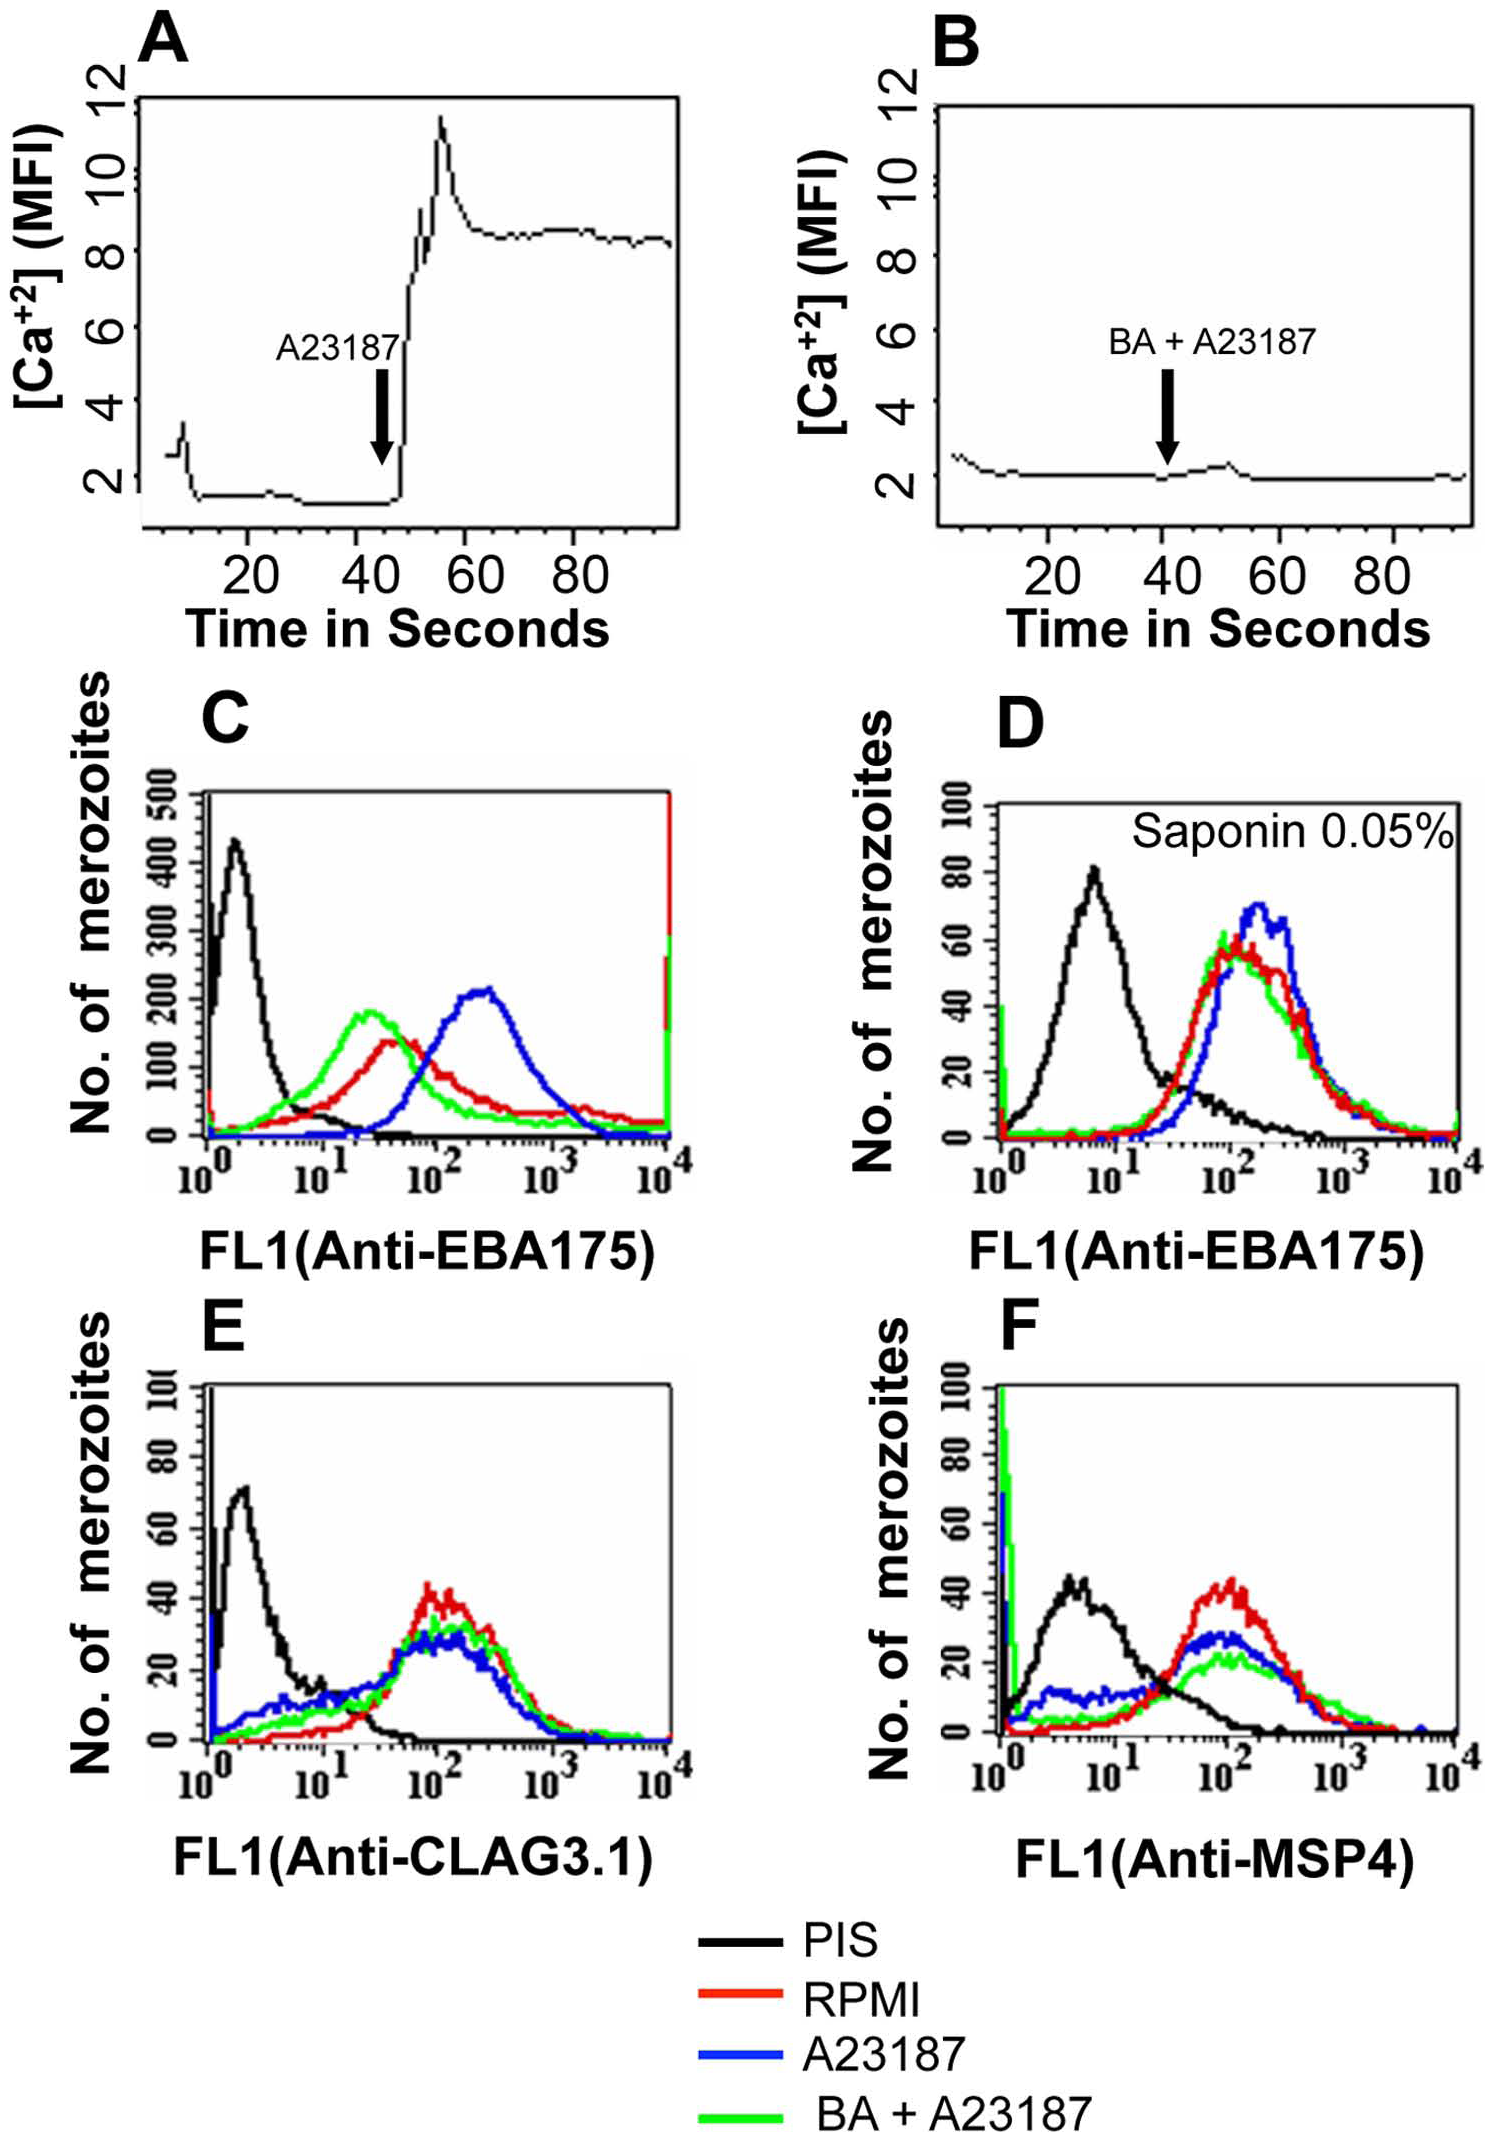 Cytosolic calcium levels and expression of EBA175 on merozoite surface detected by flow cytometry following treatment with calcium ionophore A23187.